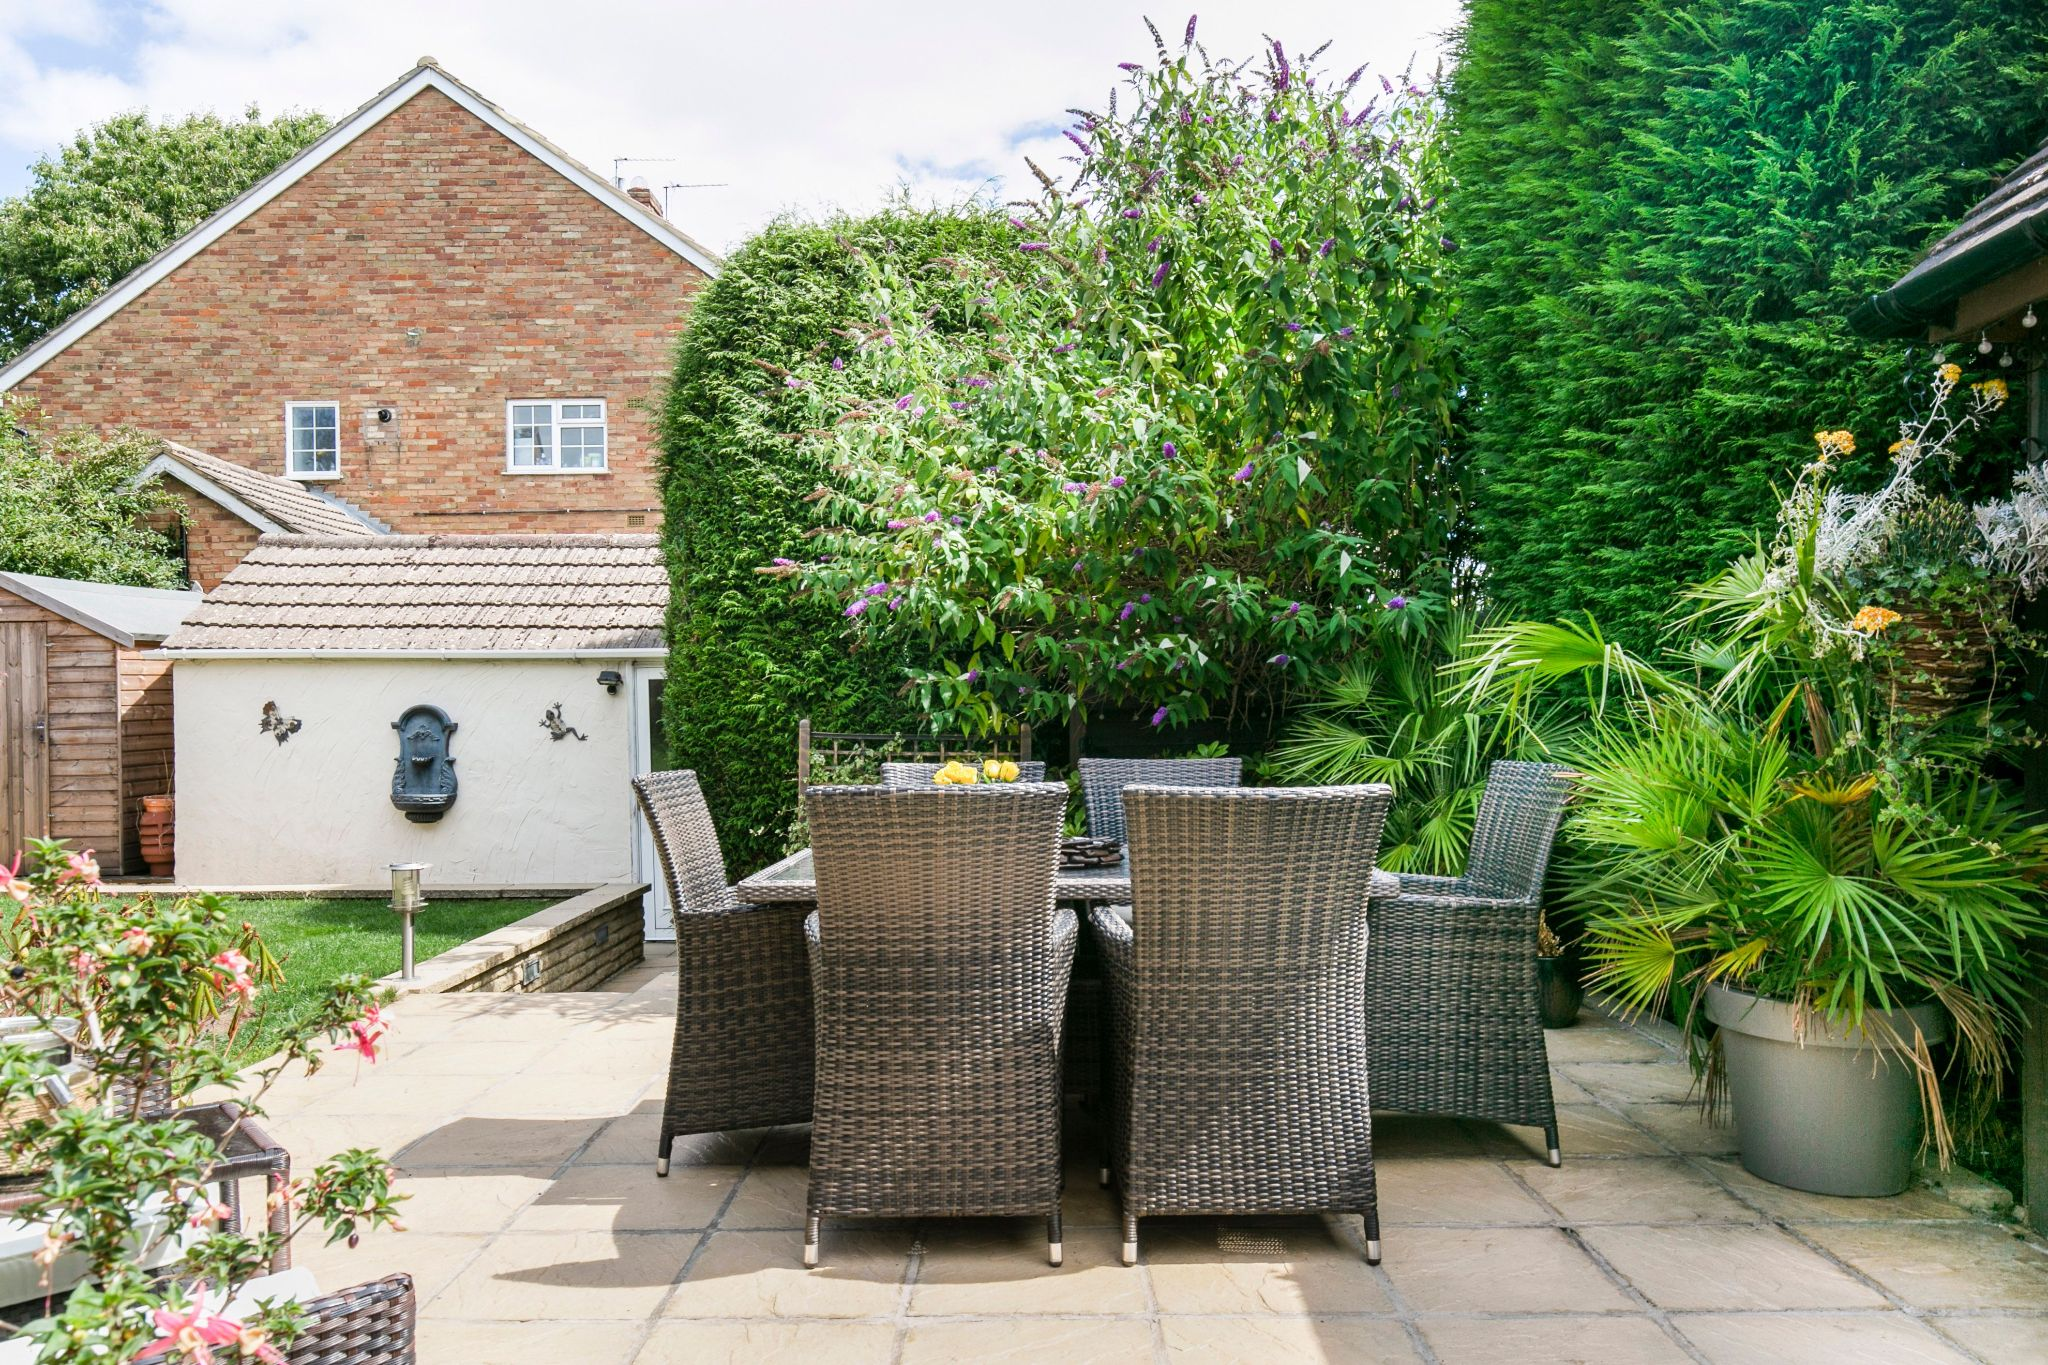 4 bedroom detached house For Sale in Potters Bar - Photograph 19